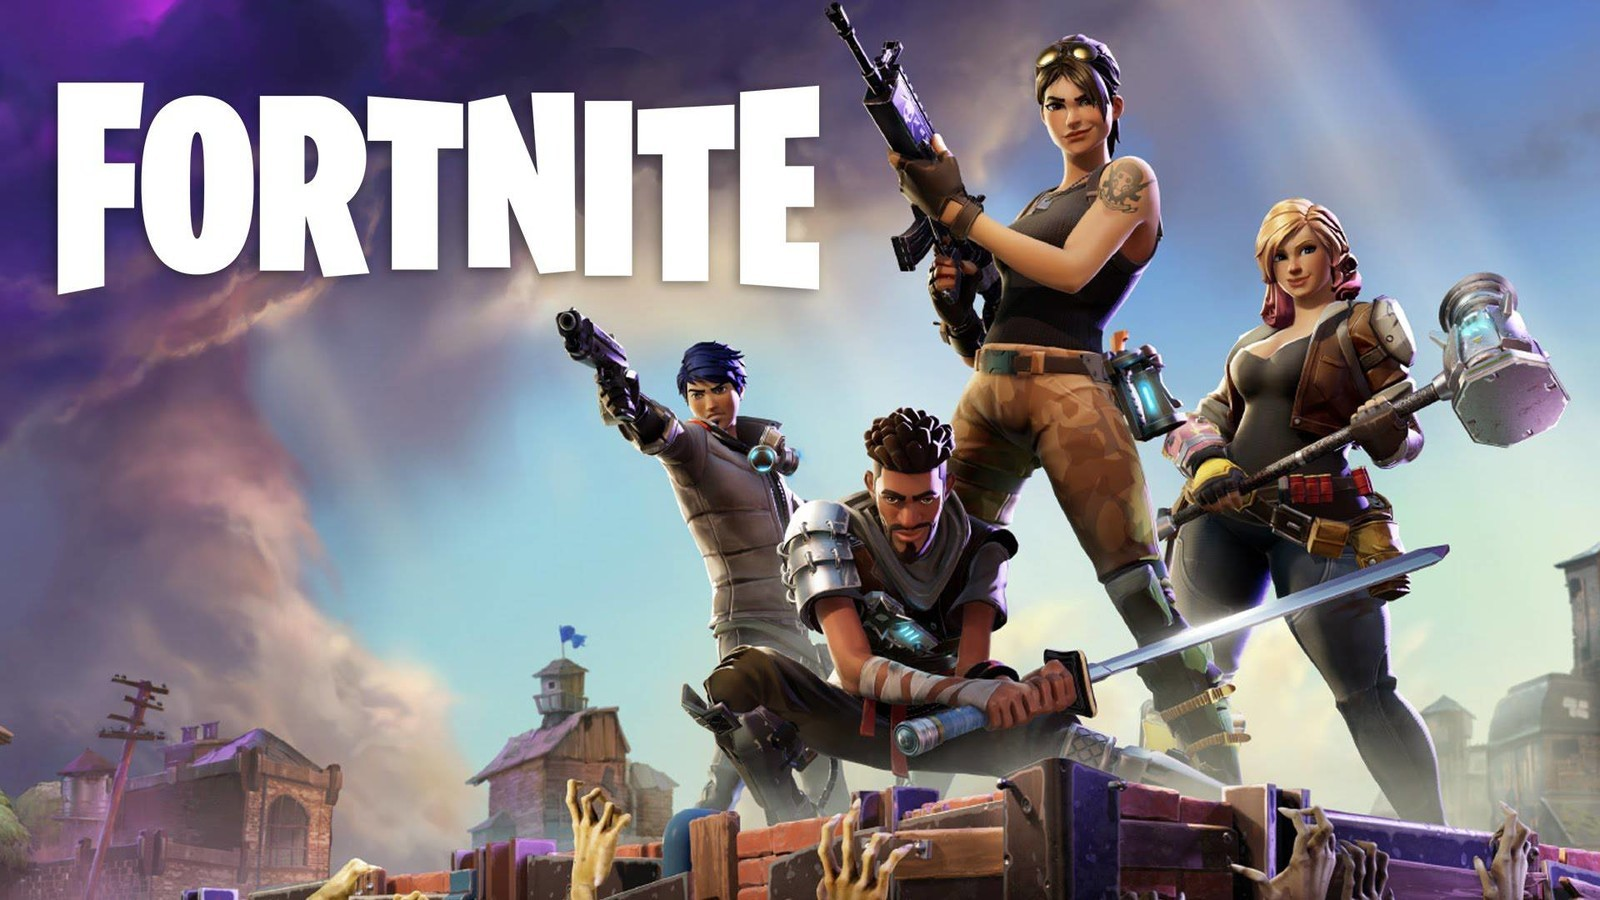 【APPCHEAT.ME FORTNITE】 Vbucks and Extra Vbucks FOR ANDROID IOS PC PLAYSTATION | 100% WORKING METHOD | GET UNLIMITED RESOURCES NOW